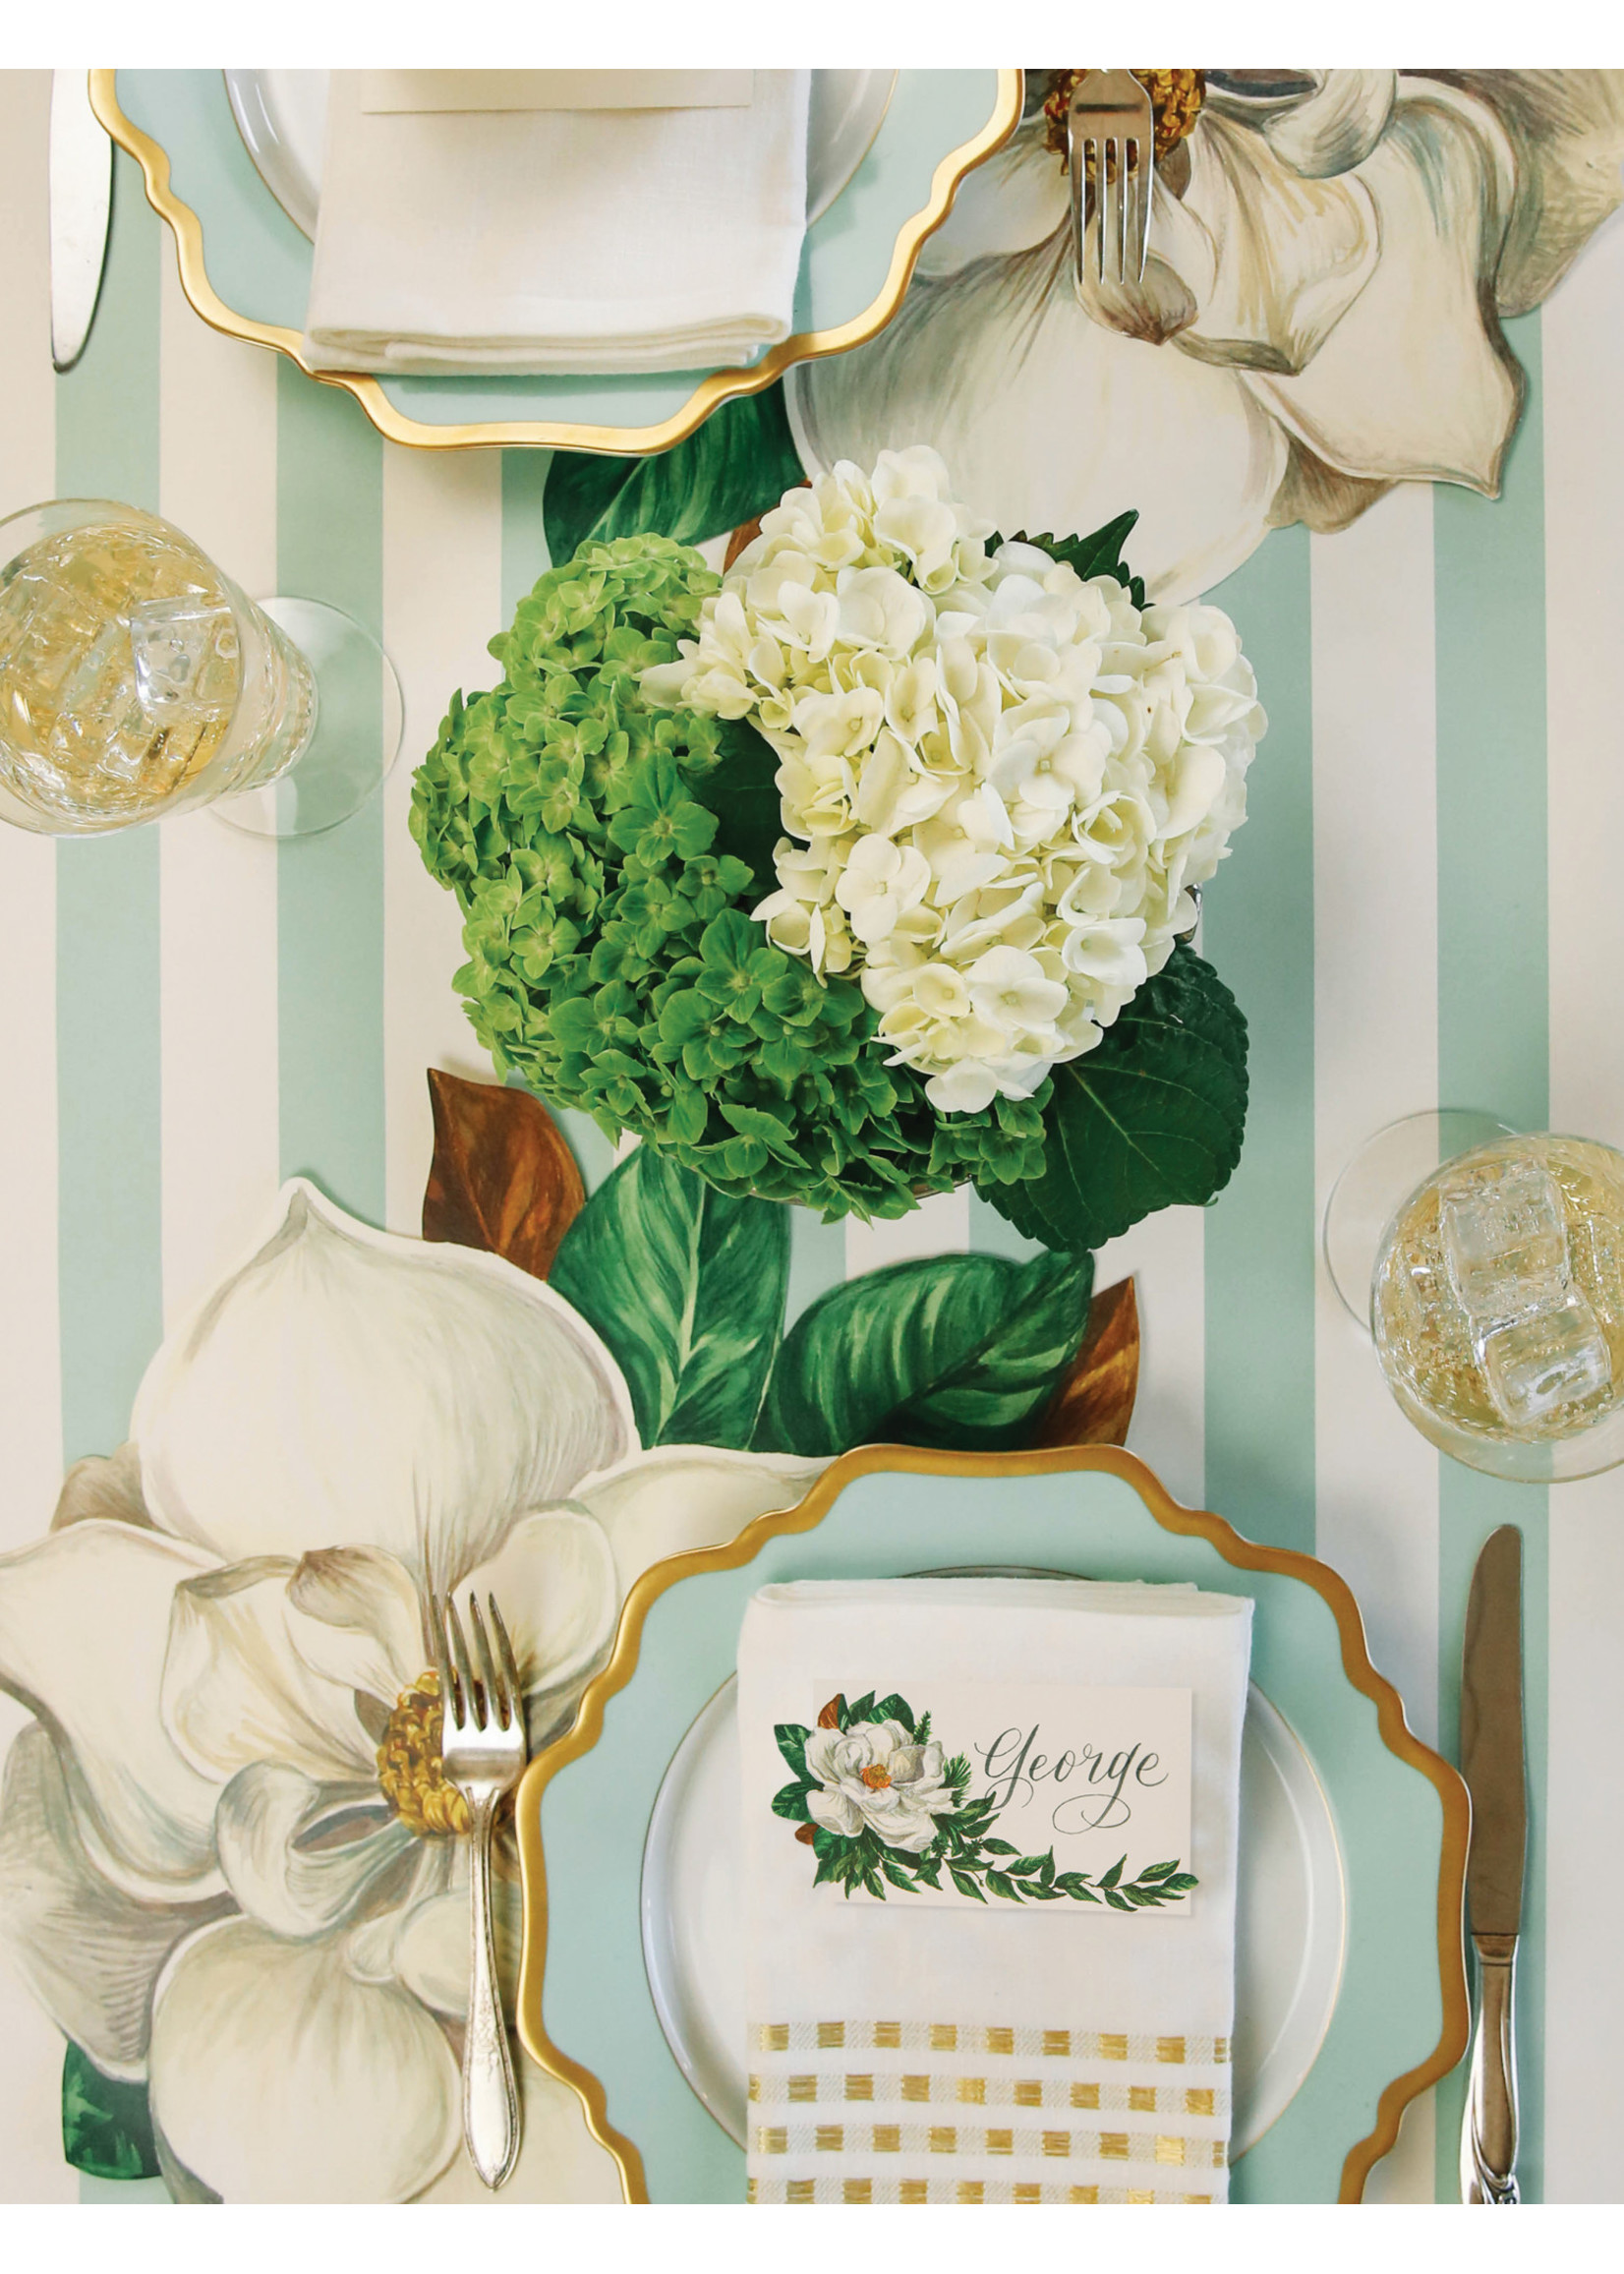 Hester & Cook Paper Placemats - Magnolia (12 sheets)